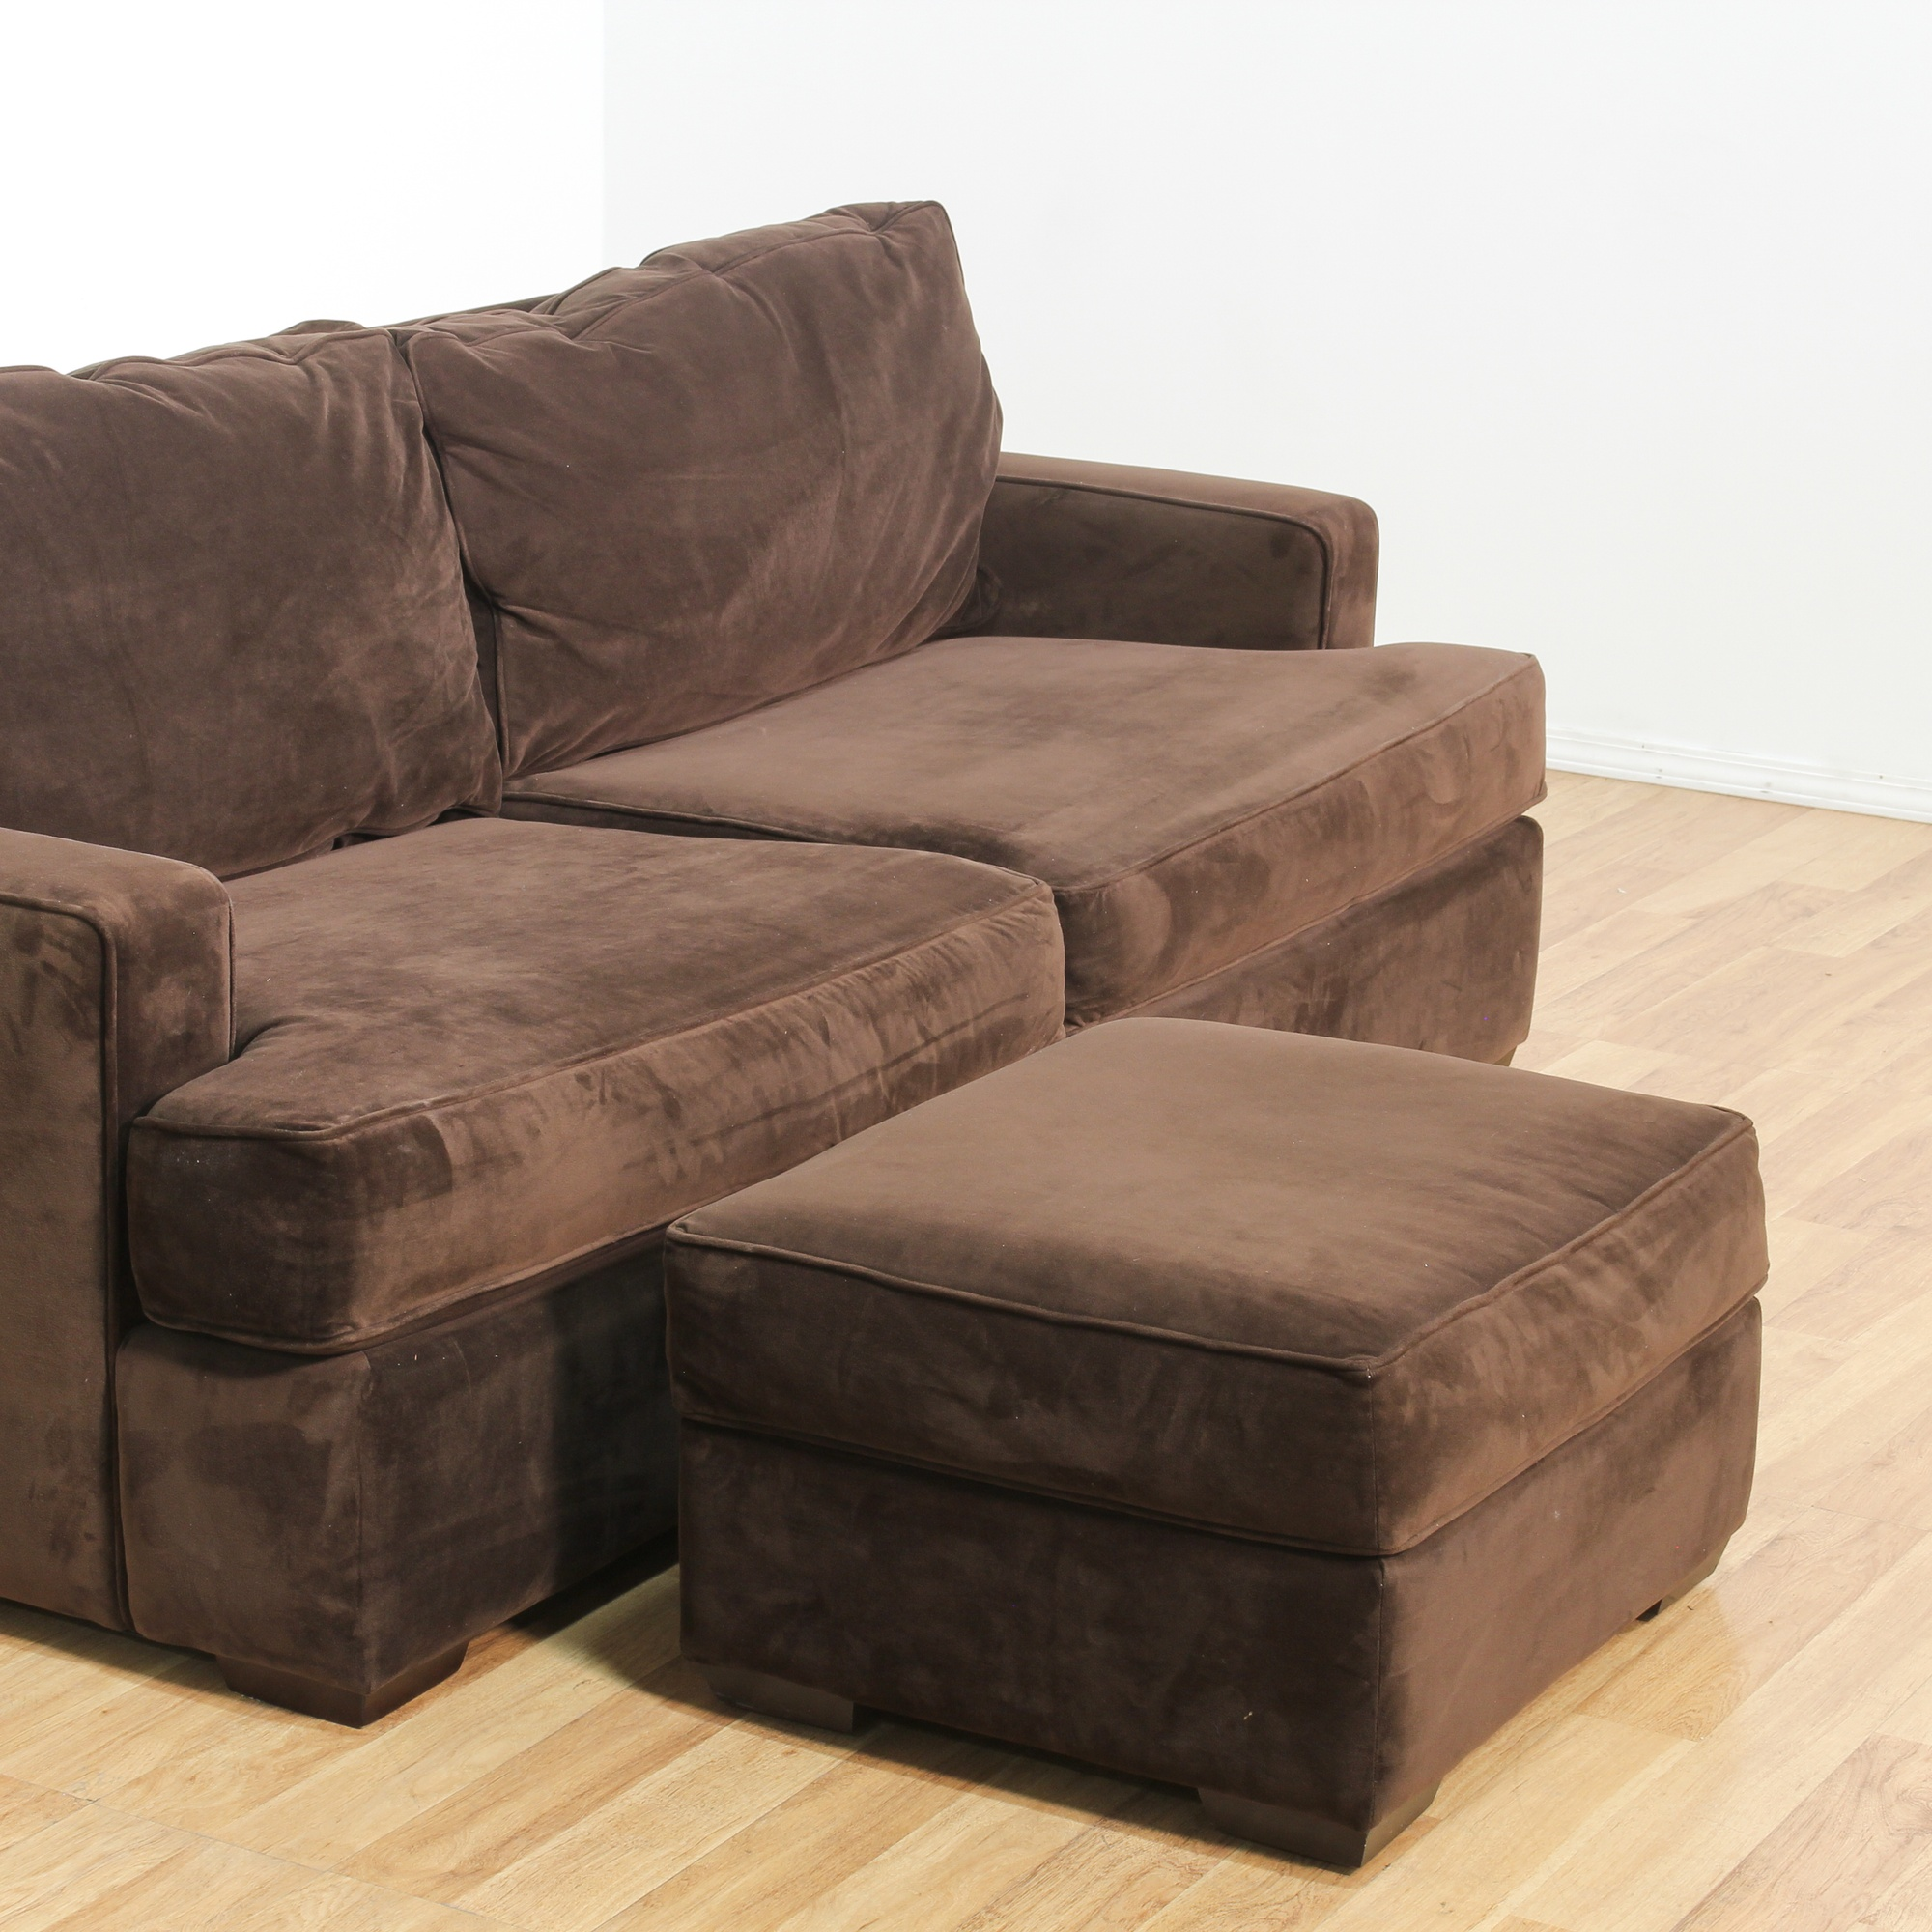 Brown Upholstered Contemporary Loveseat Sofa